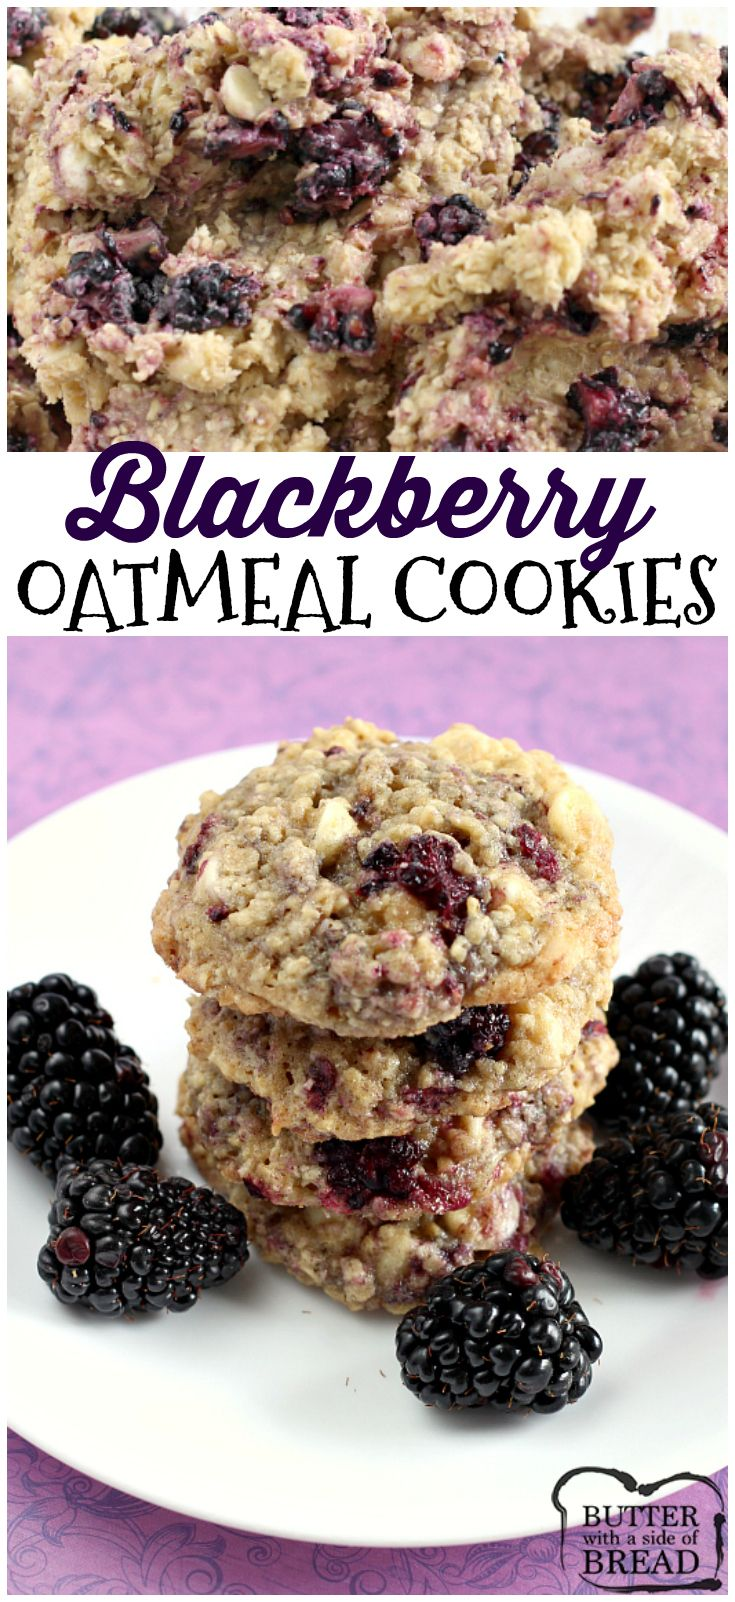 Blackberry Oatmeal Cookies are absolutely amazing! The cookies are soft and chewy and the fresh blackberries add the most delicious flavor!